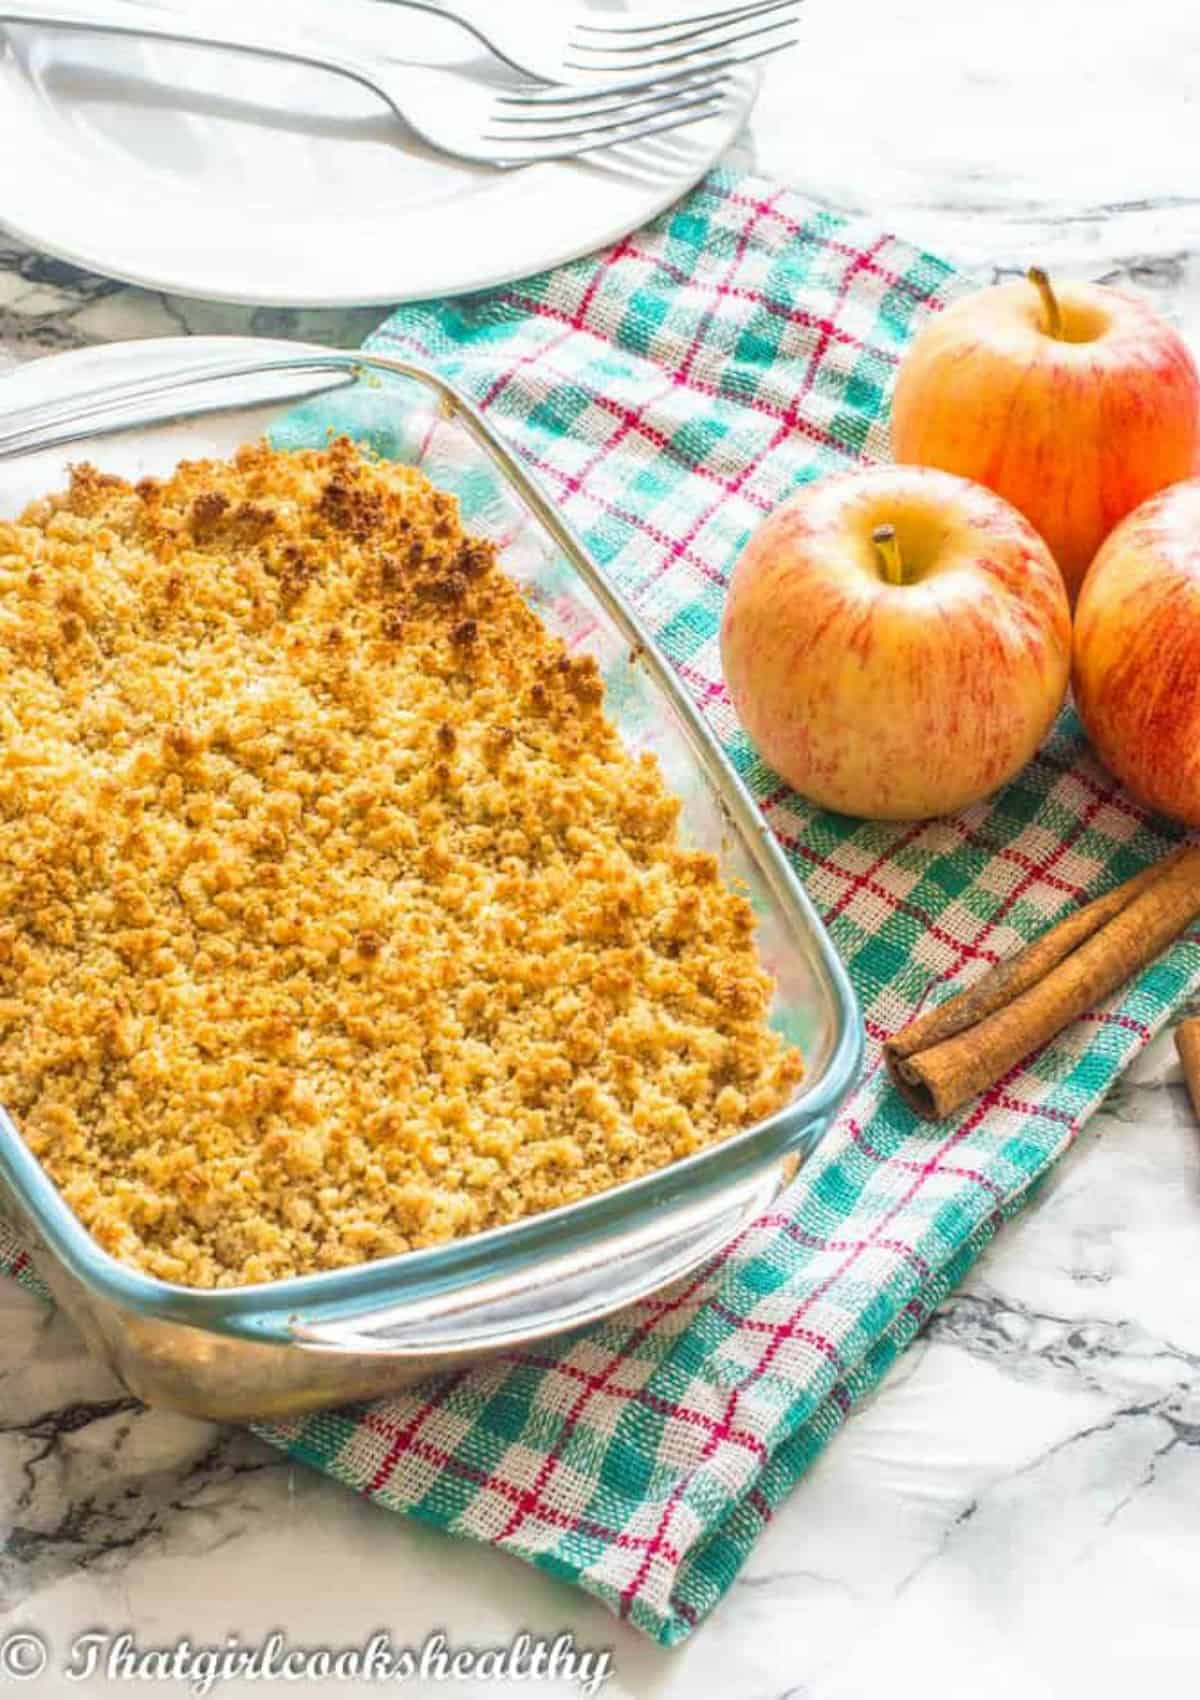 apple crisp with red apples on a cloth